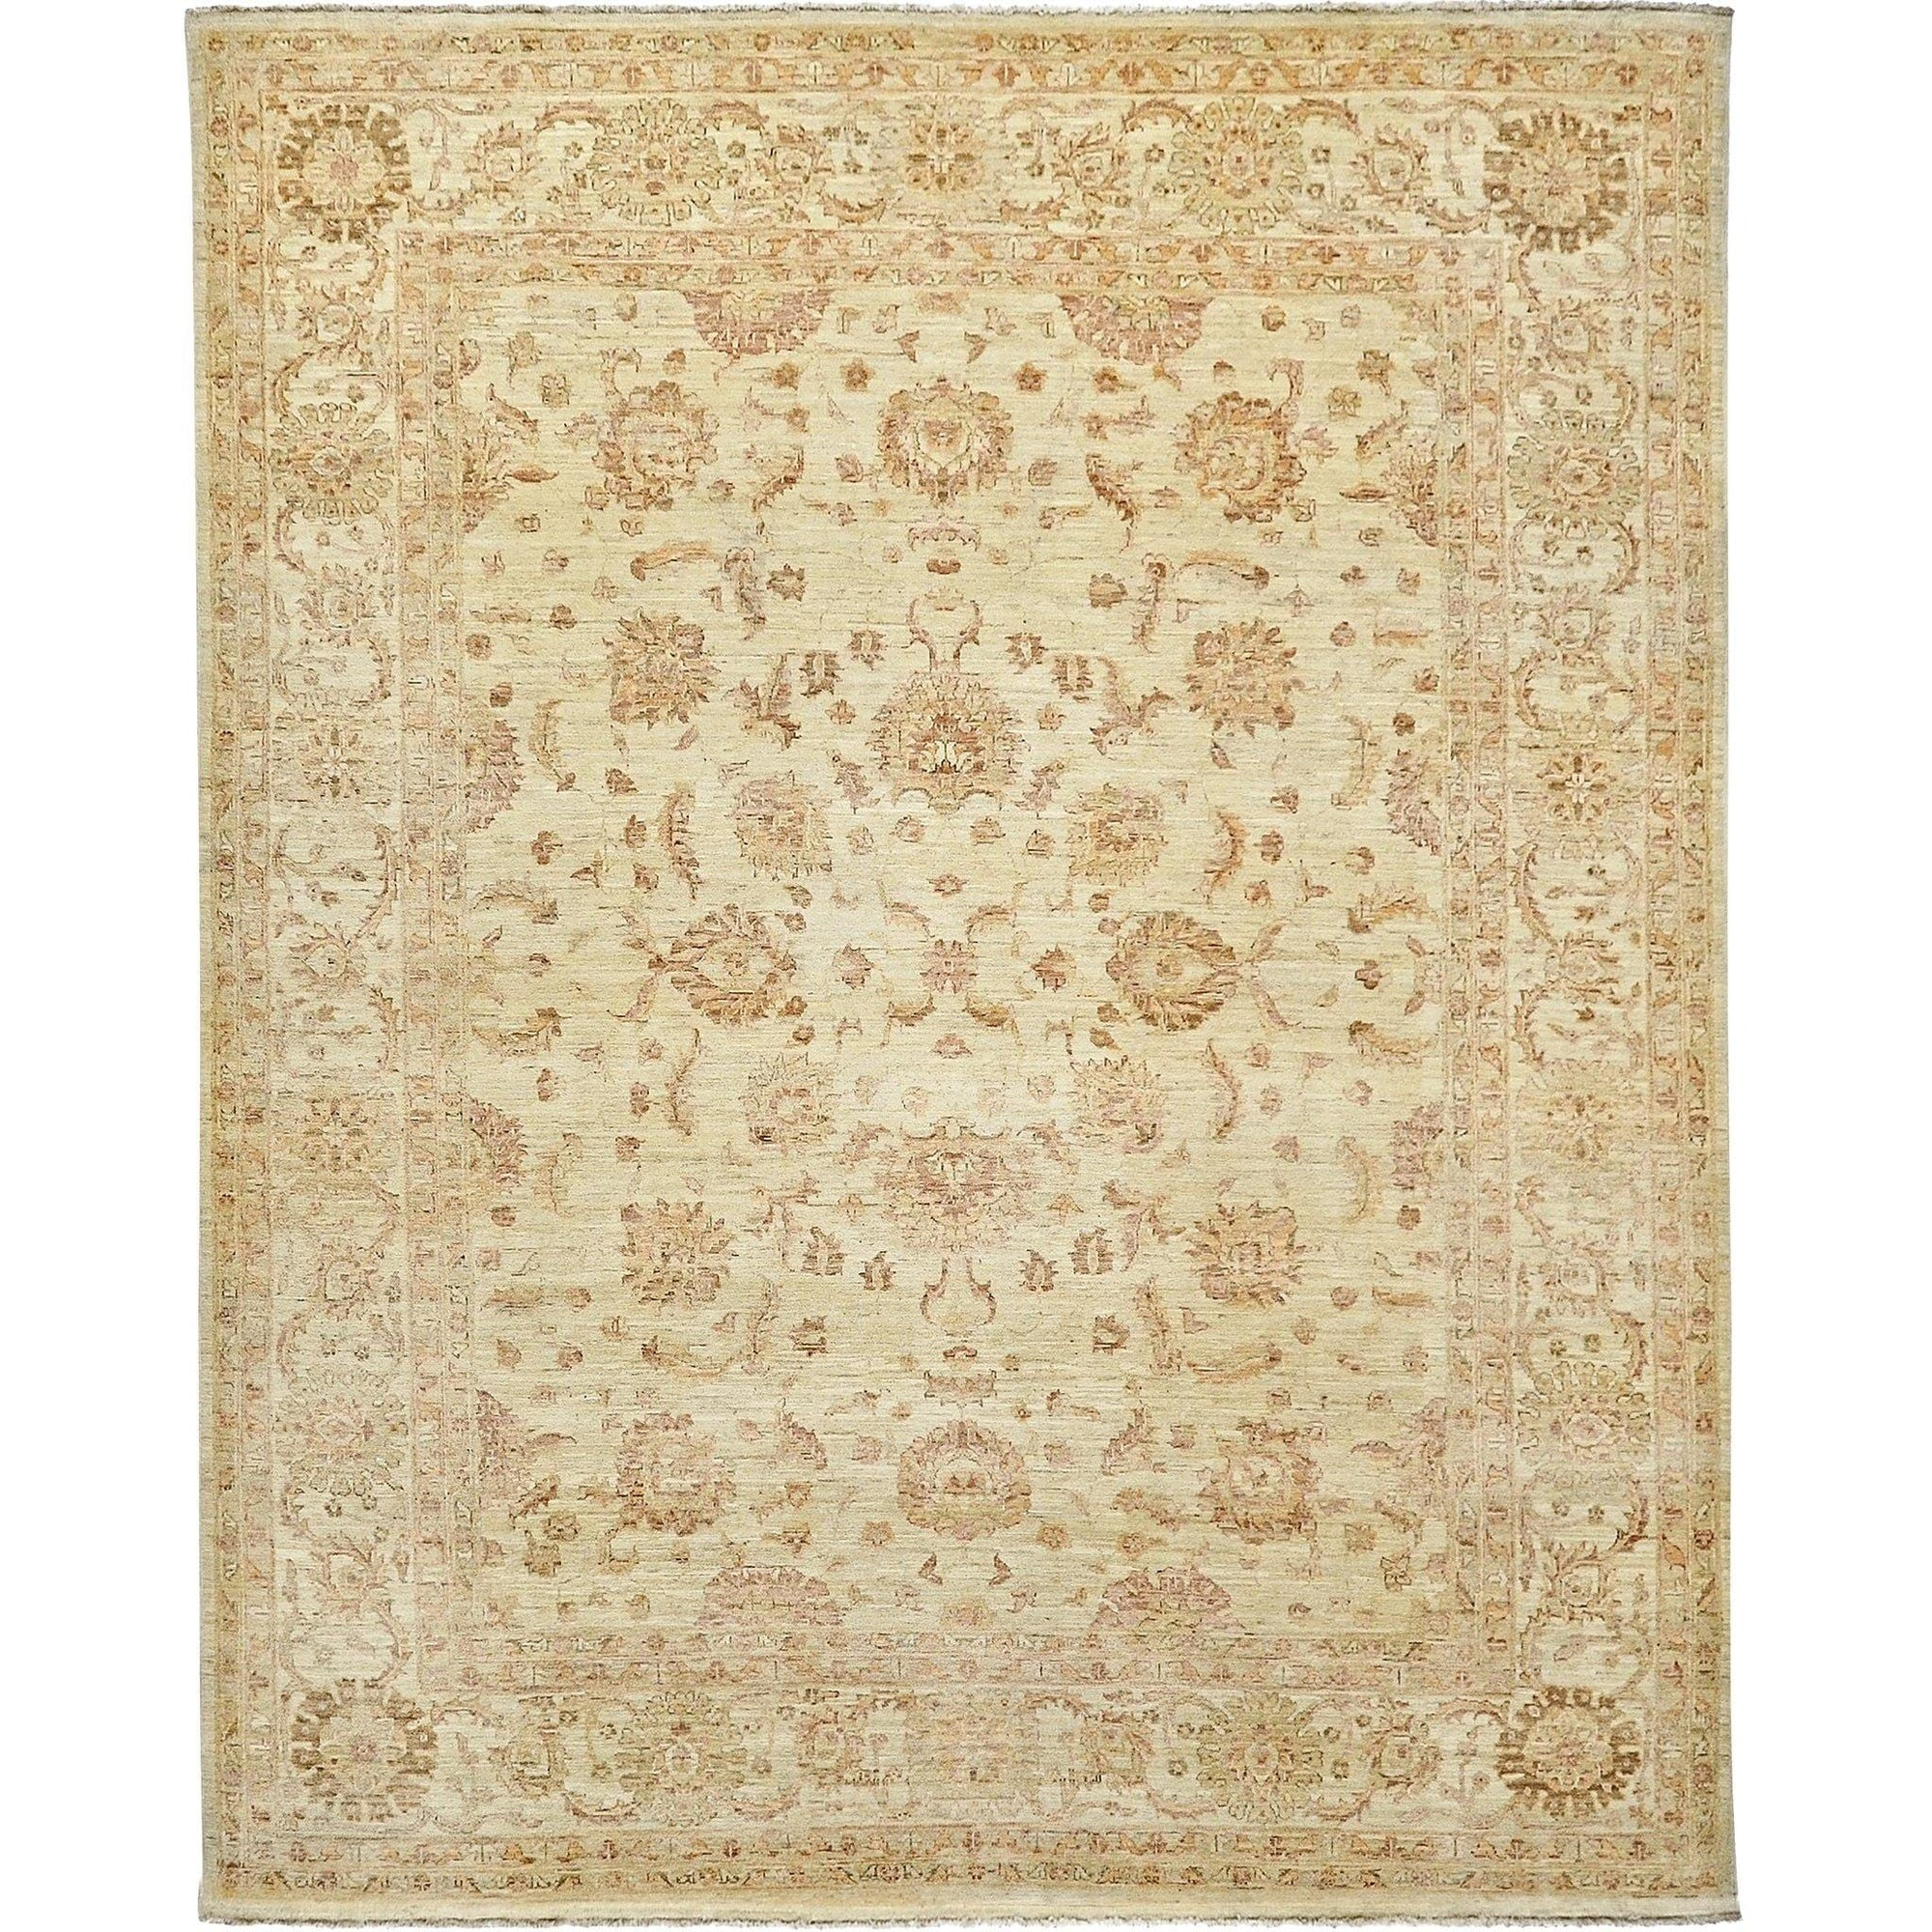 Fine Hand-knotted Colour Reform Wool Rug 236cm x 298cm Persian-Rug | House-of-Haghi | NewMarket | Auckland | NZ | Handmade Persian Rugs | Hand Knotted Persian Rugs